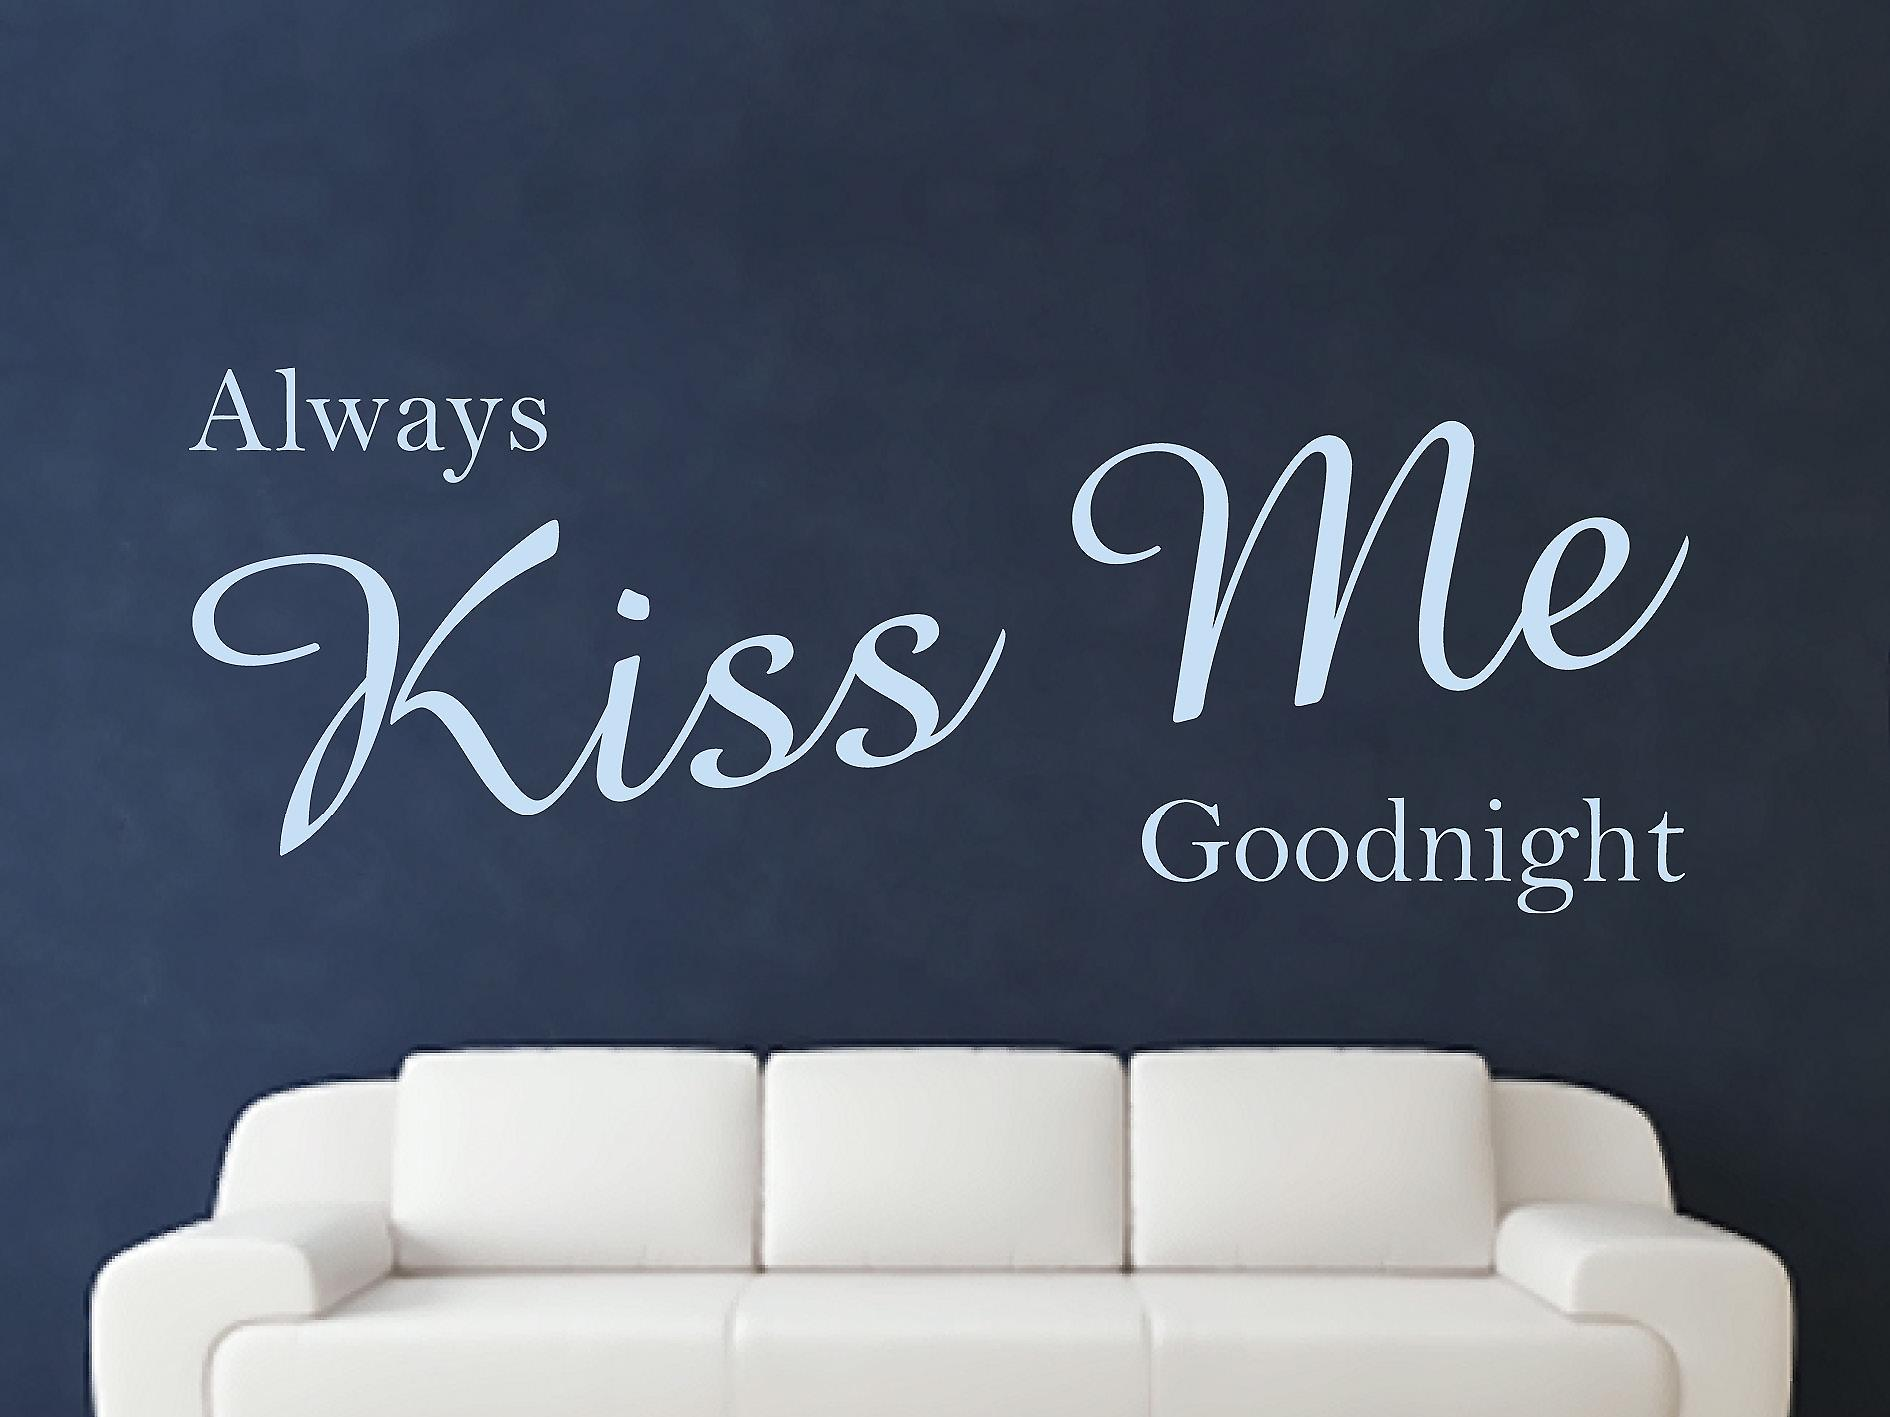 Always Kiss Me Goodnight Wall Art Sticker - Pastel Blue